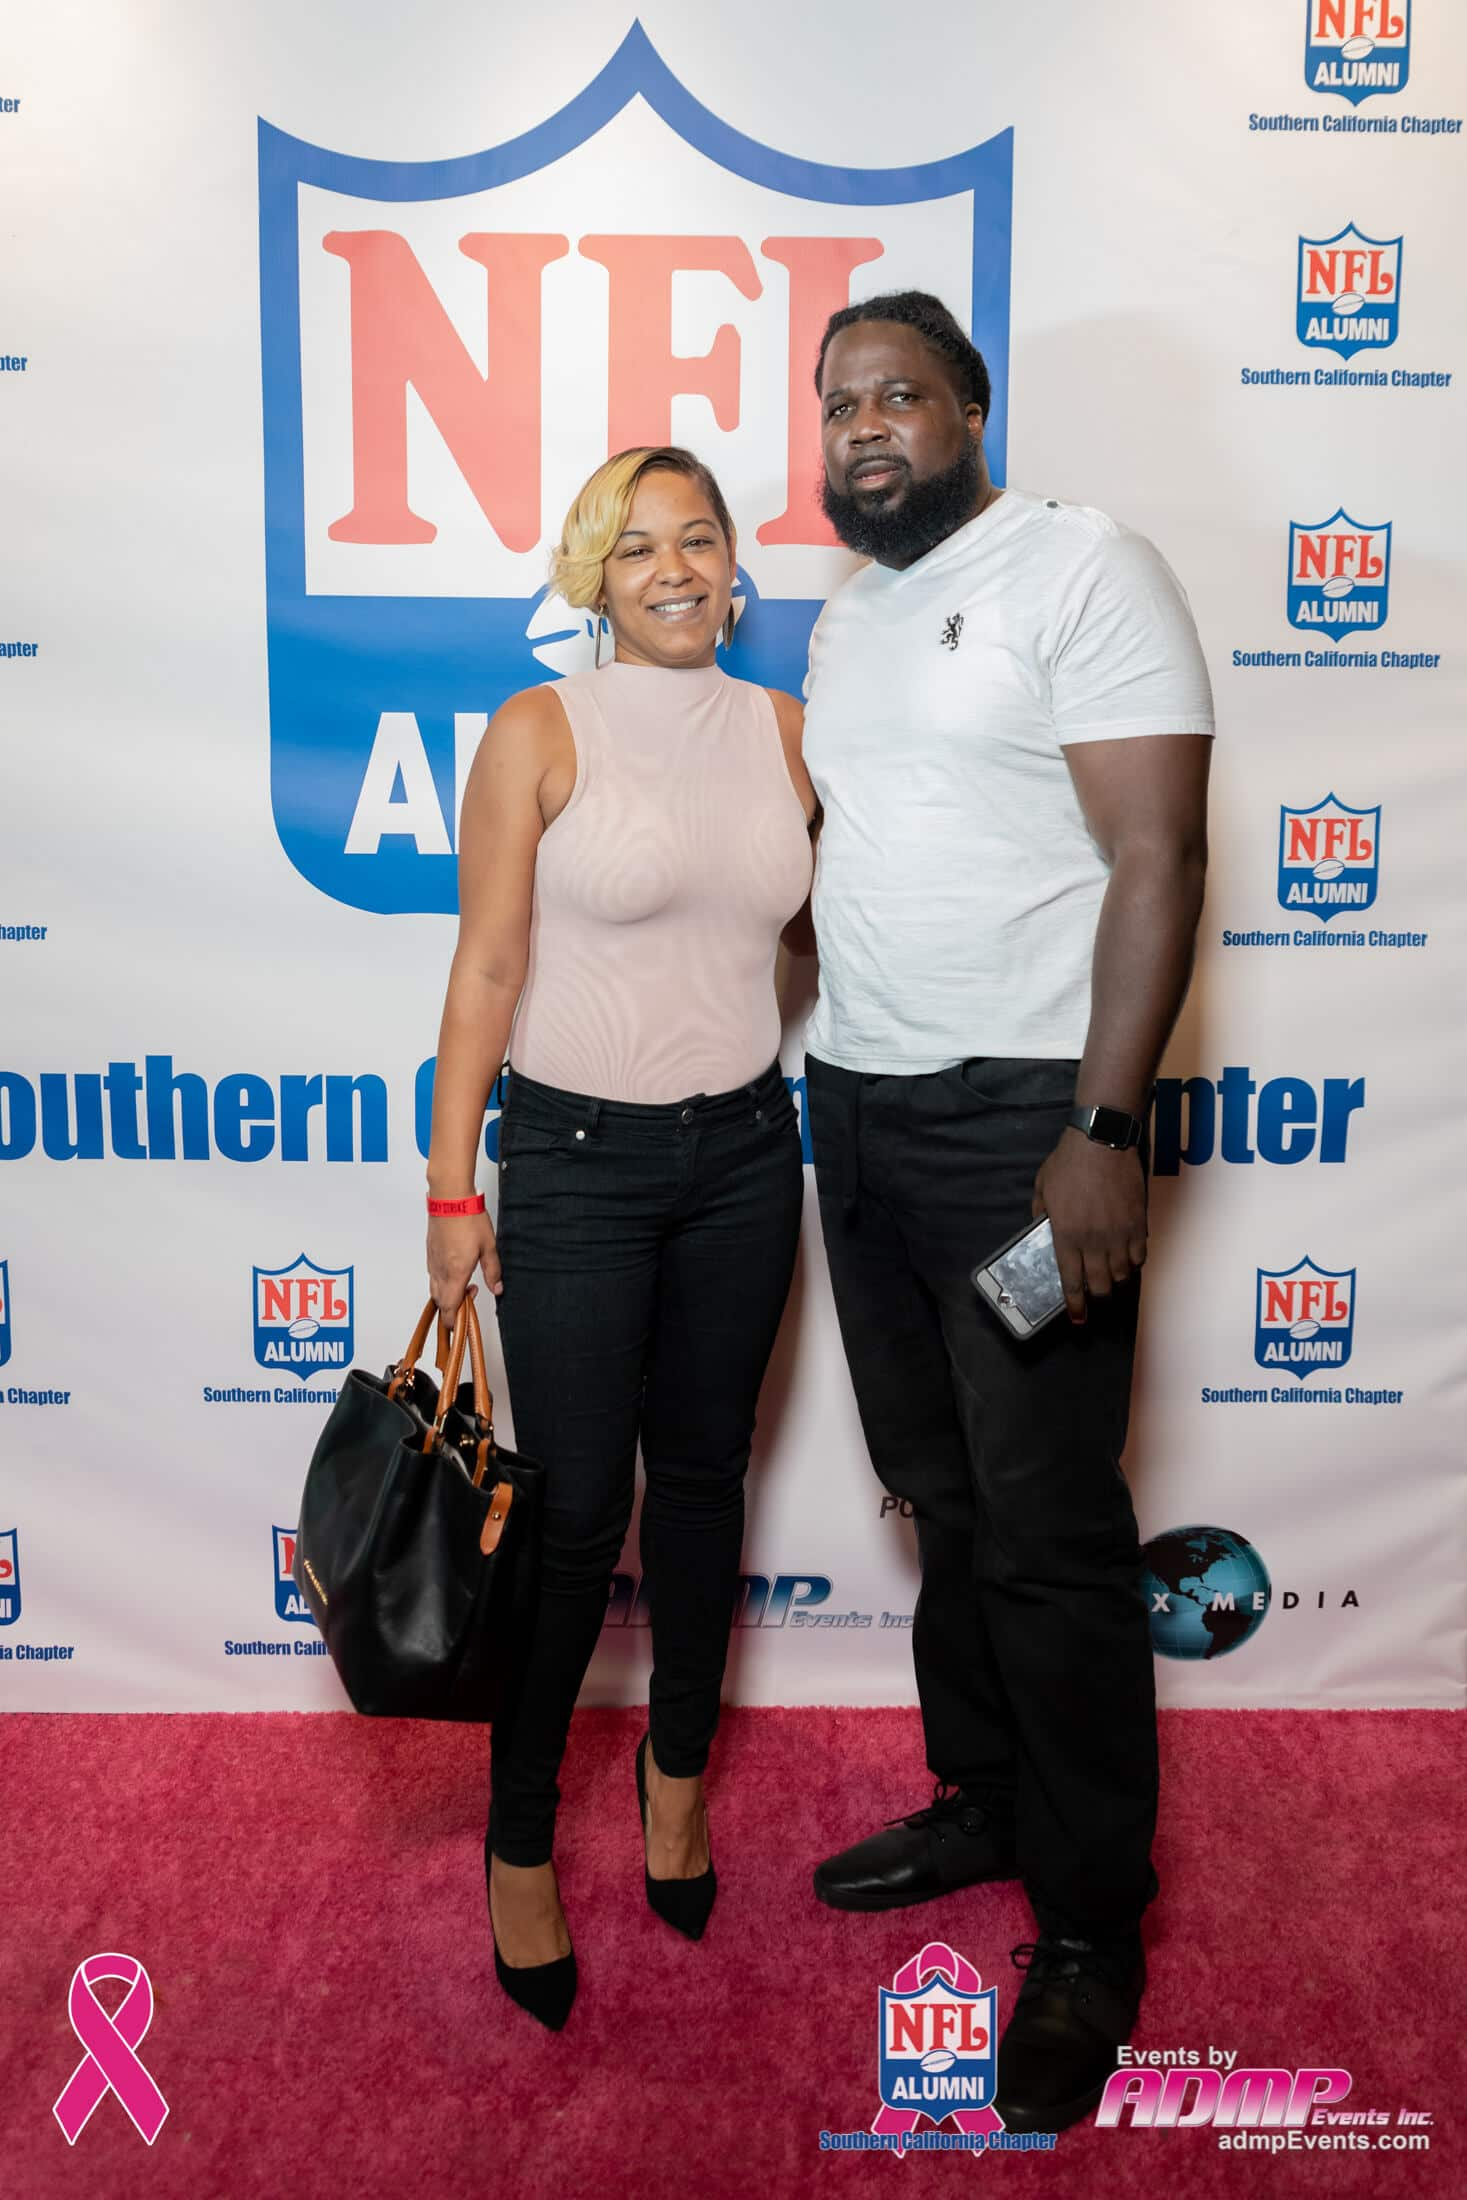 NFL Alumni SoCal Charity Event Series Breast Cancer Event 10-14-19-309